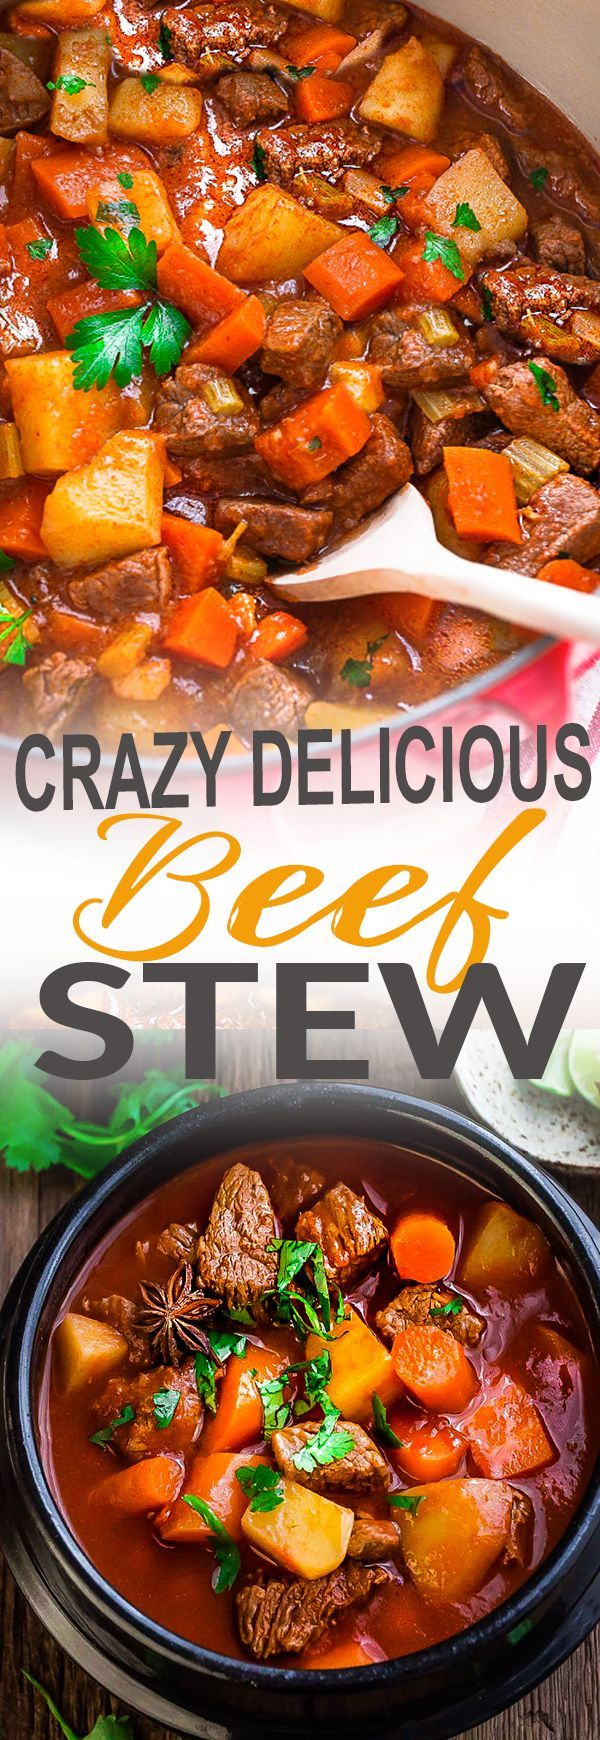 This crazy delicious recipe for Classic Homemade Beef Stew makes the perfect comforting dish on a cold day. Best of all, it's easy to make and has the most delicious tender meat with carrots, potatoes, sweet potatoes and celery. So flavorful and good for